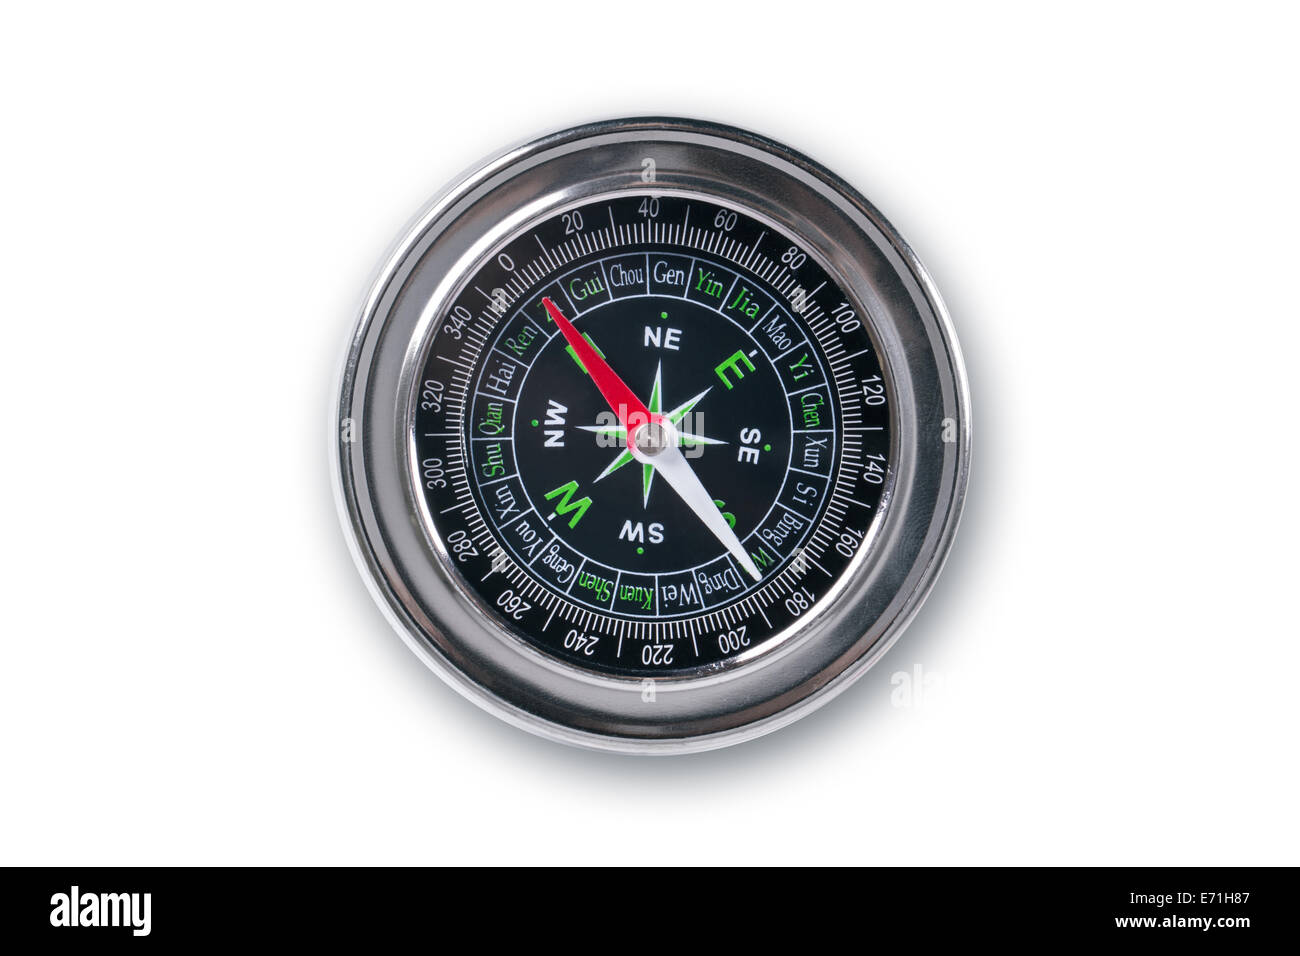 Guidance compass for your direction, isolated on white background. - Stock Image